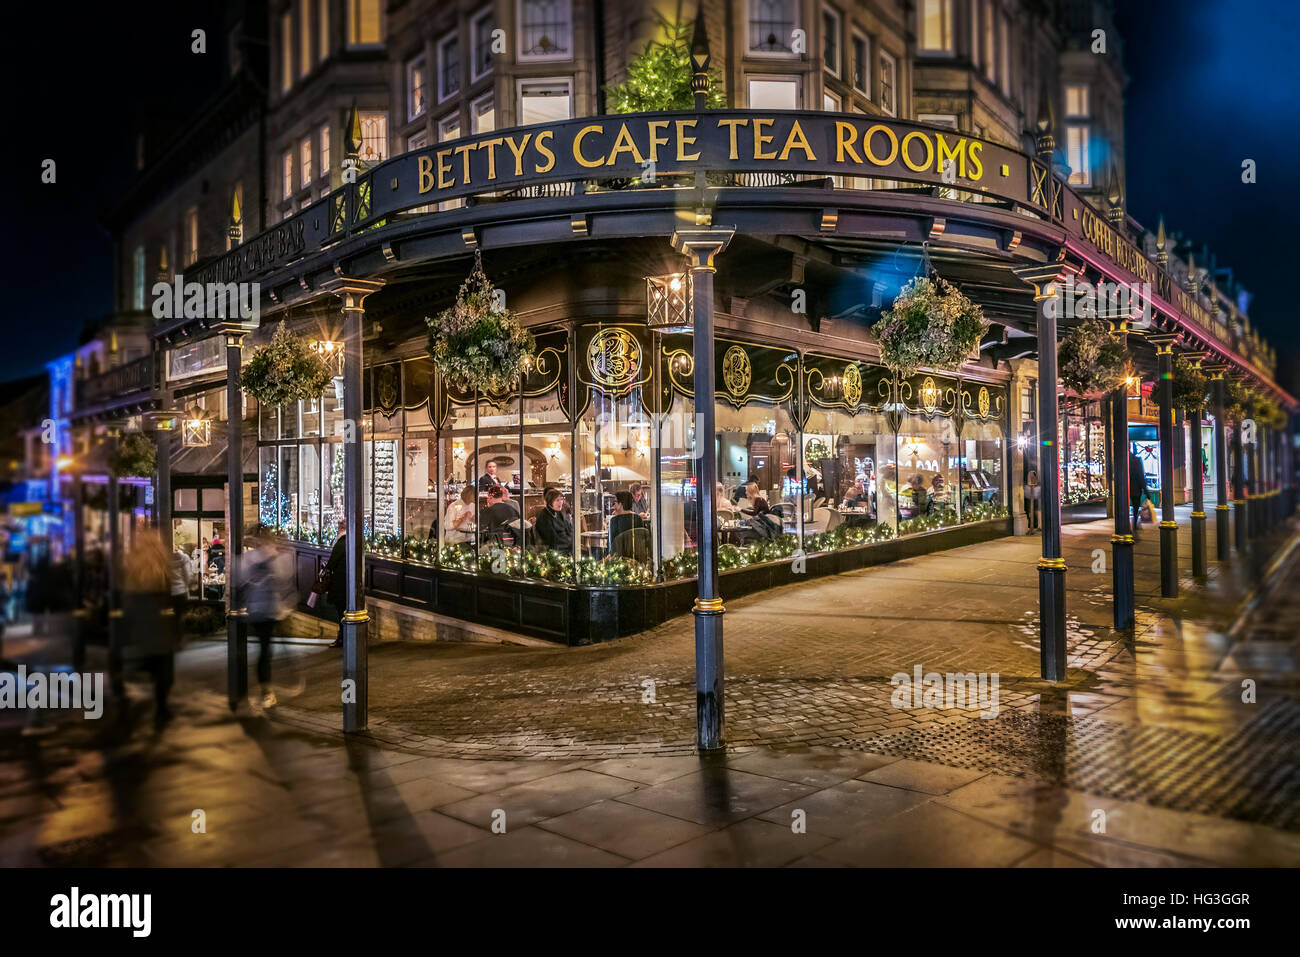 The Famous Betty's Tearooms in Harrogate North Yorkshire in the early evening with Christmas decorations. Stock Photo